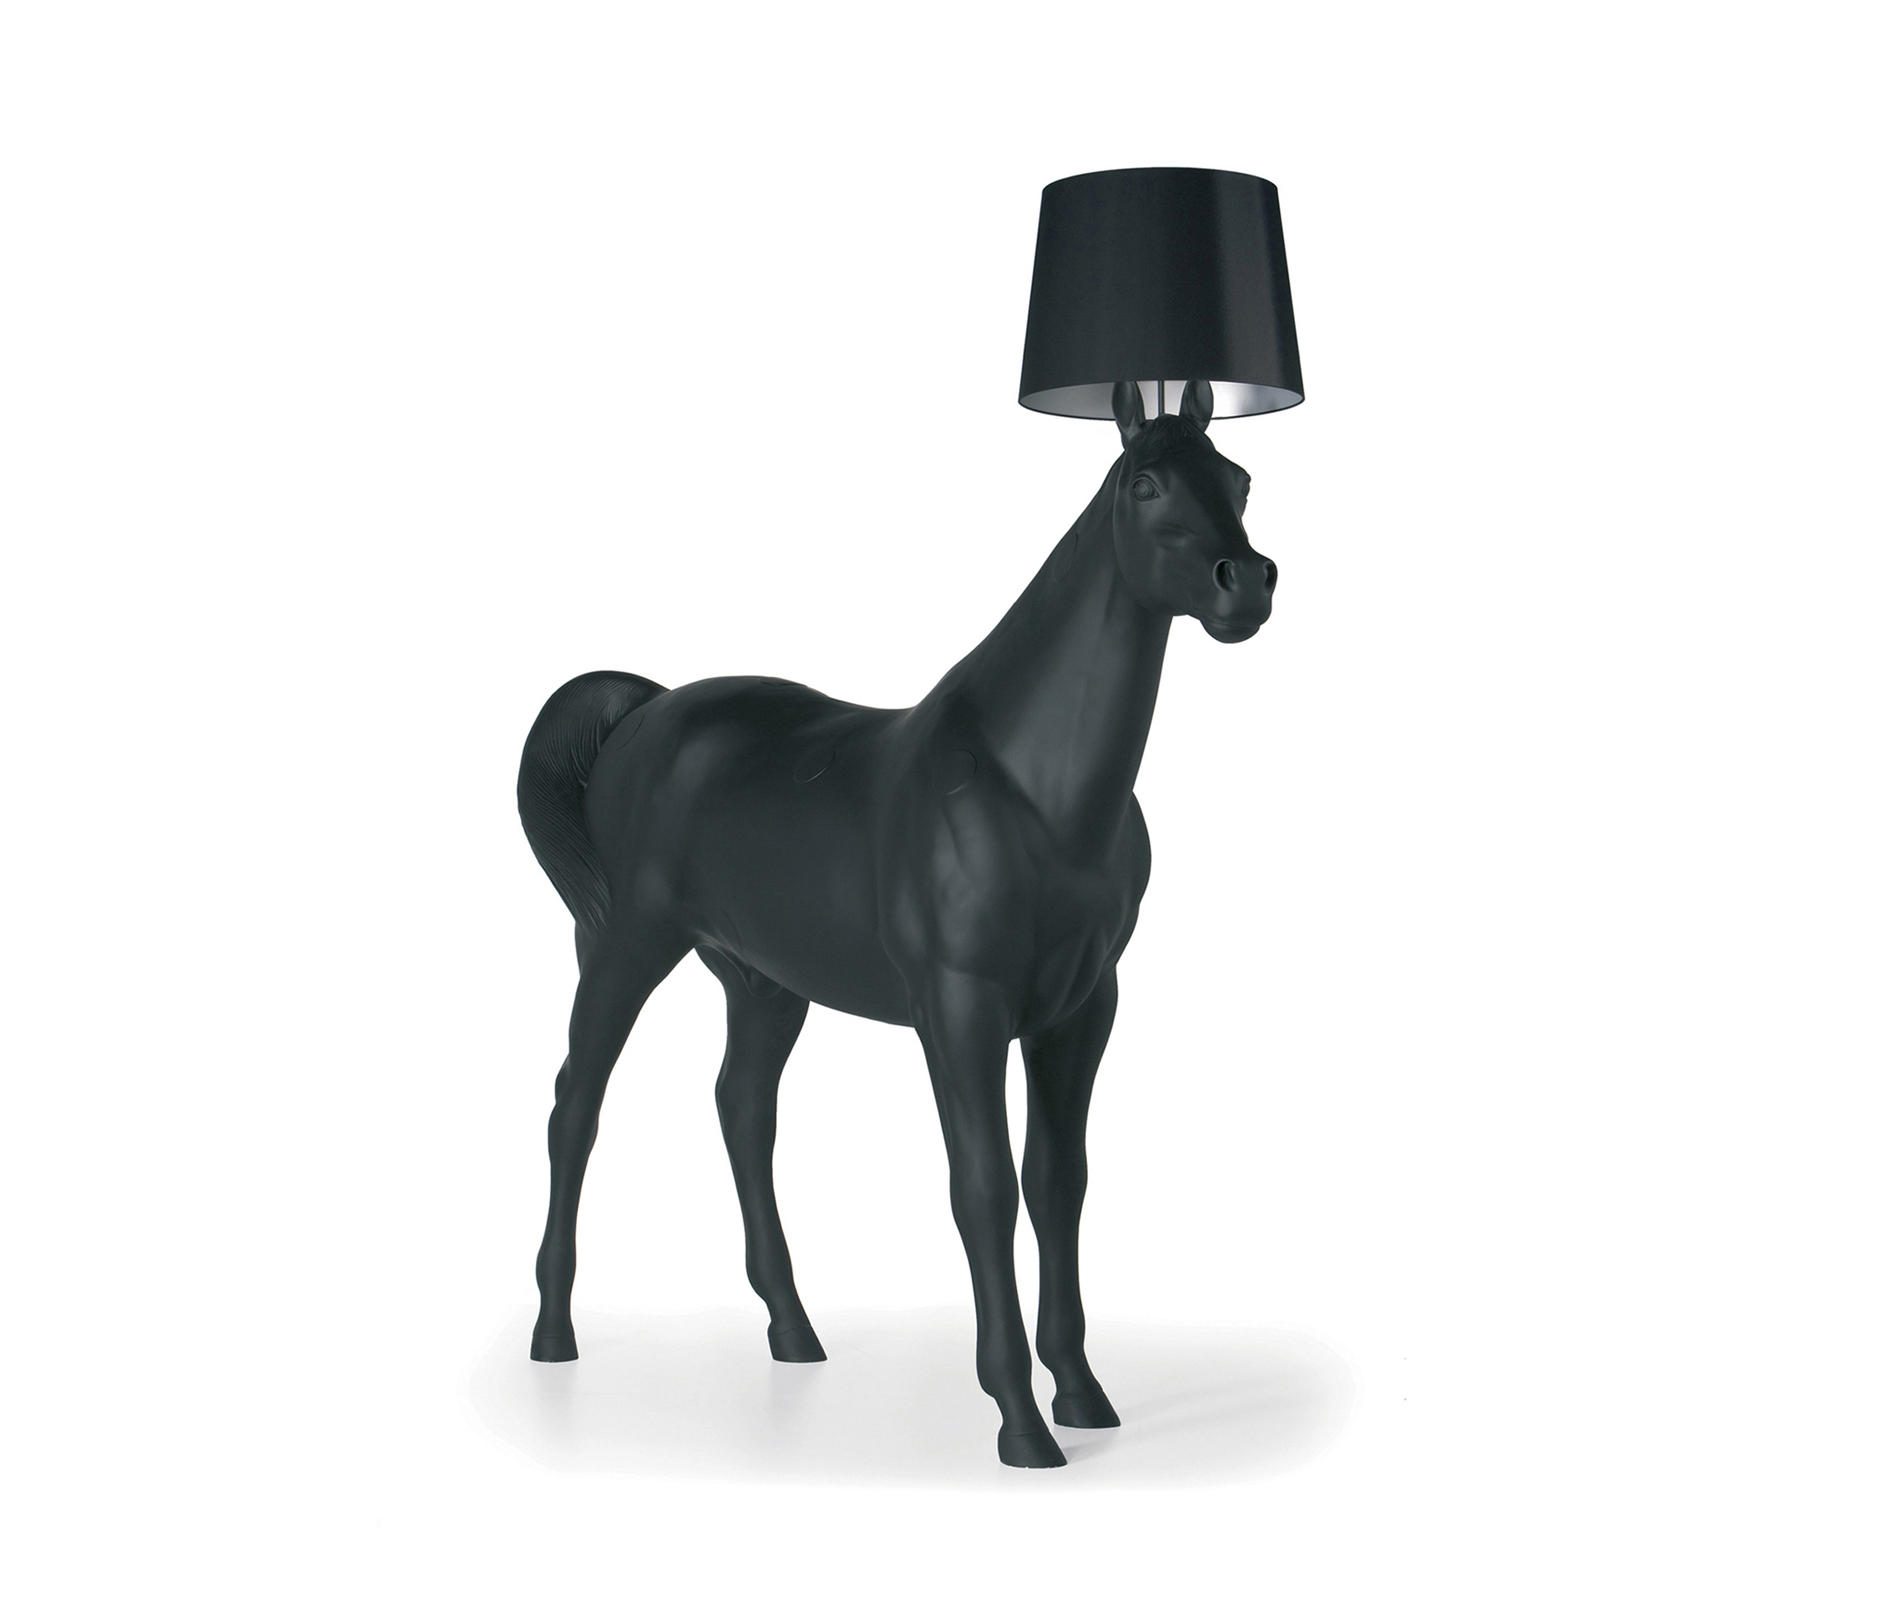 Merveilleux Horse Lamp By Moooi | Free Standing Lights ...